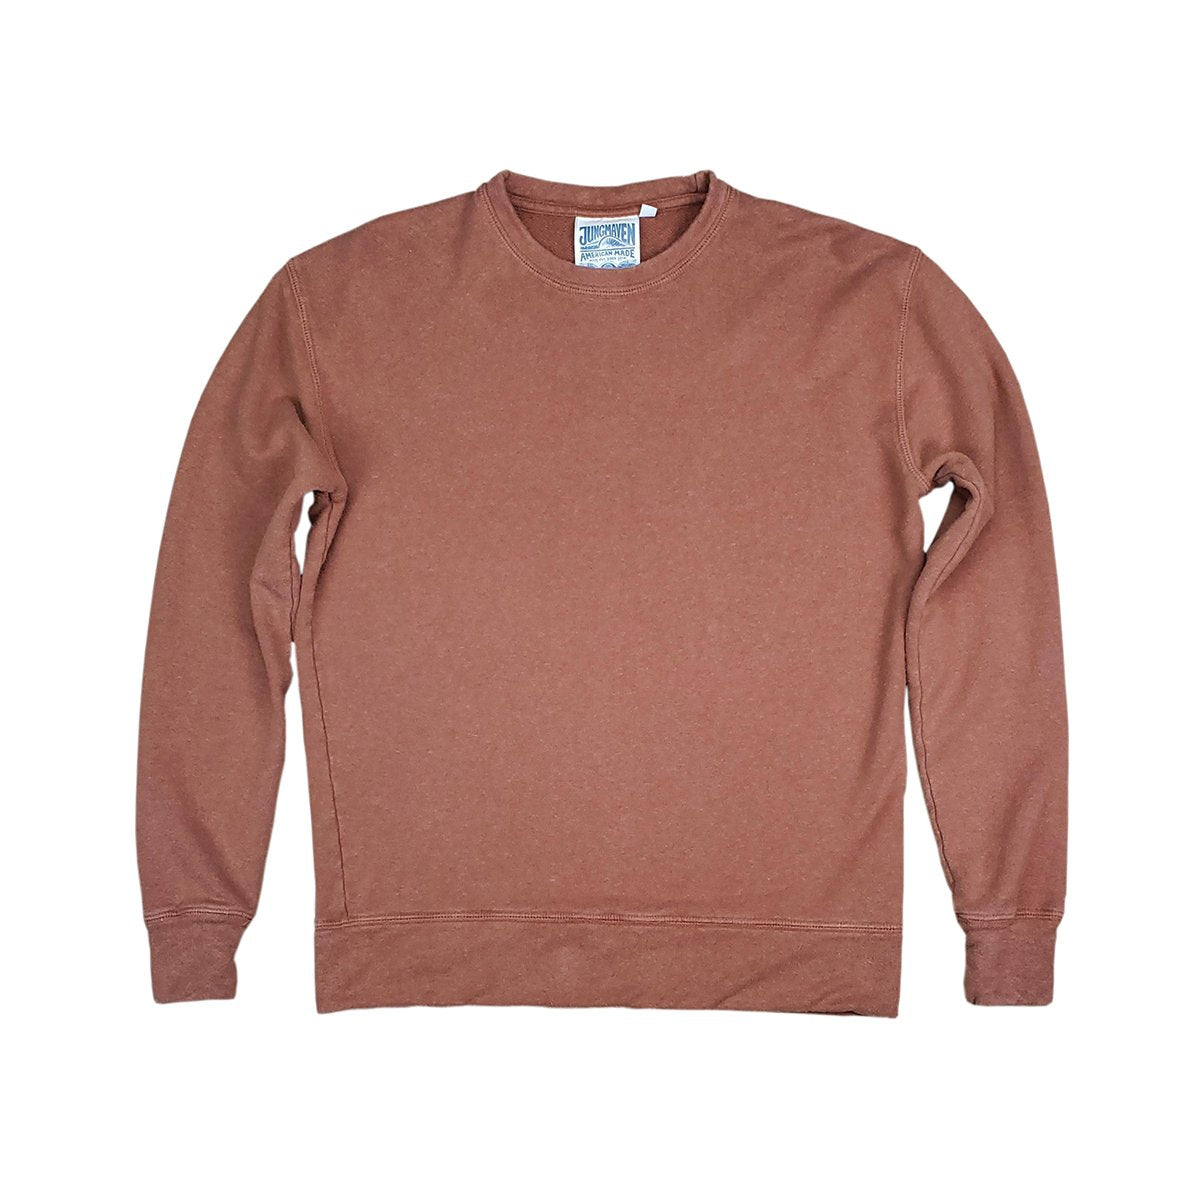 Tahoe Terry Sweatshirt in Terracotta